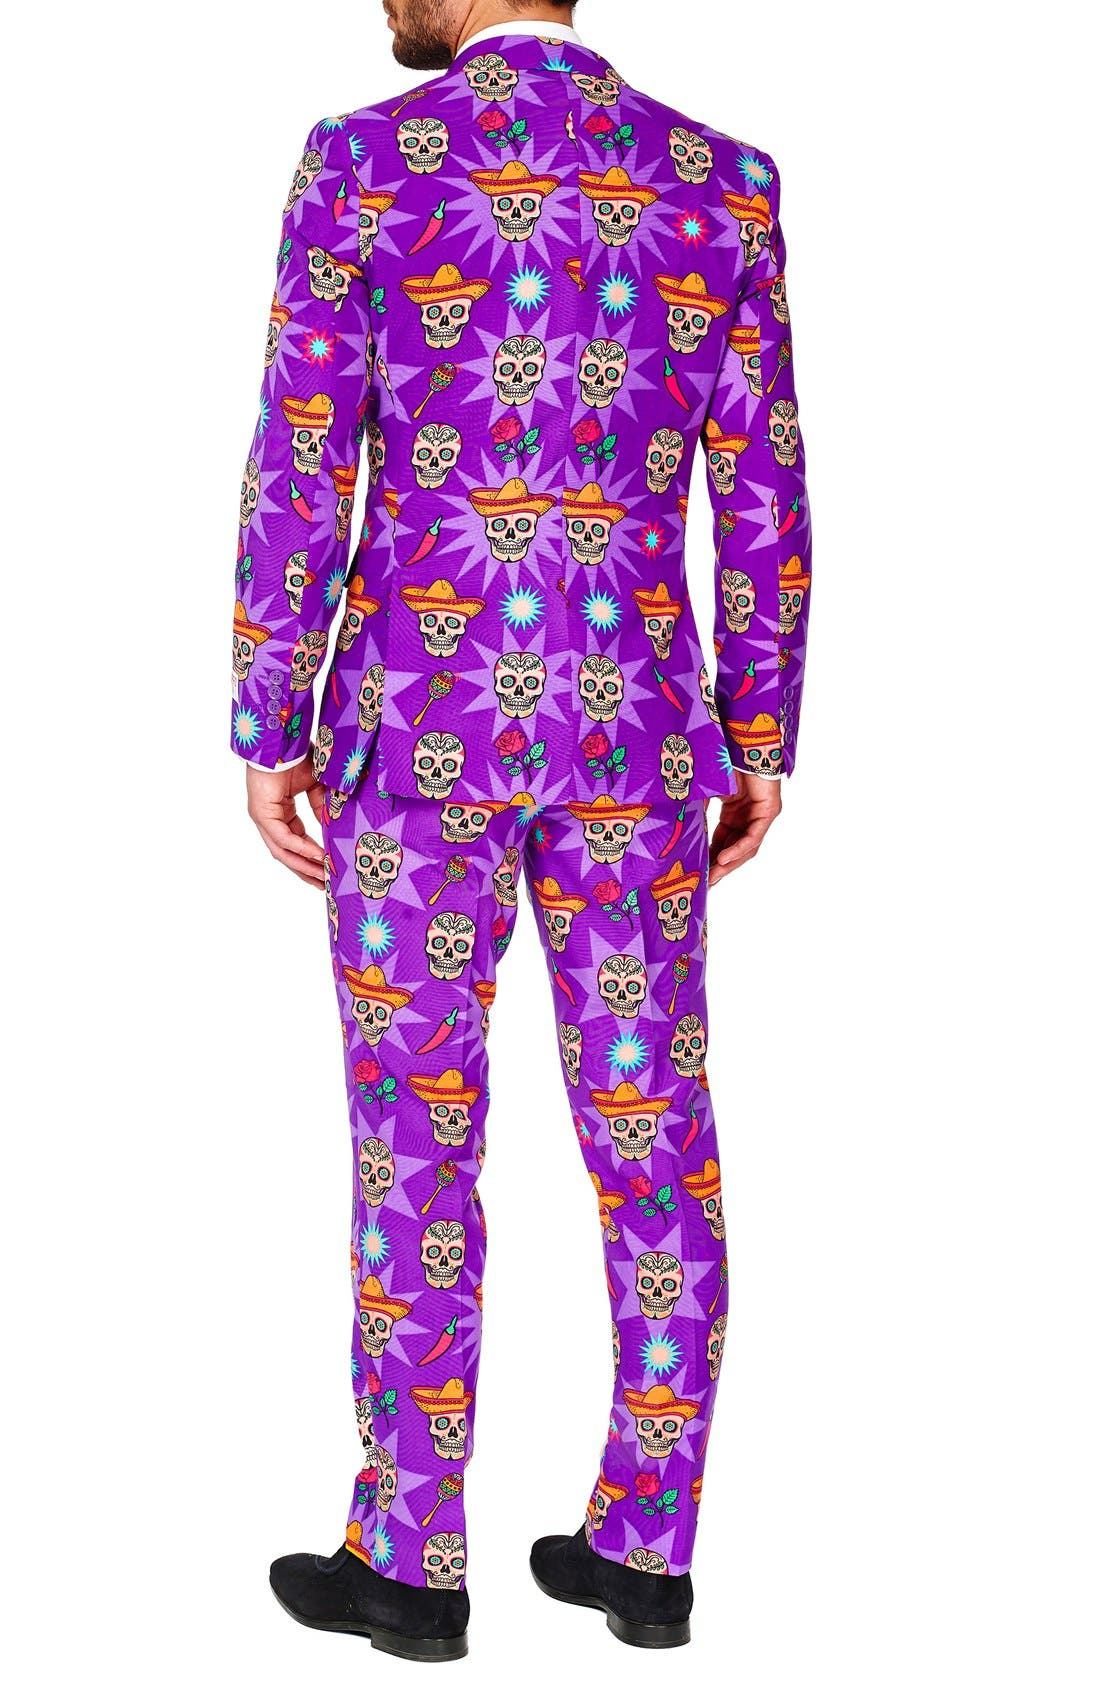 'El Muerto' Trim Fit Two-Piece Suit with Tie,                             Alternate thumbnail 2, color,                             Purple